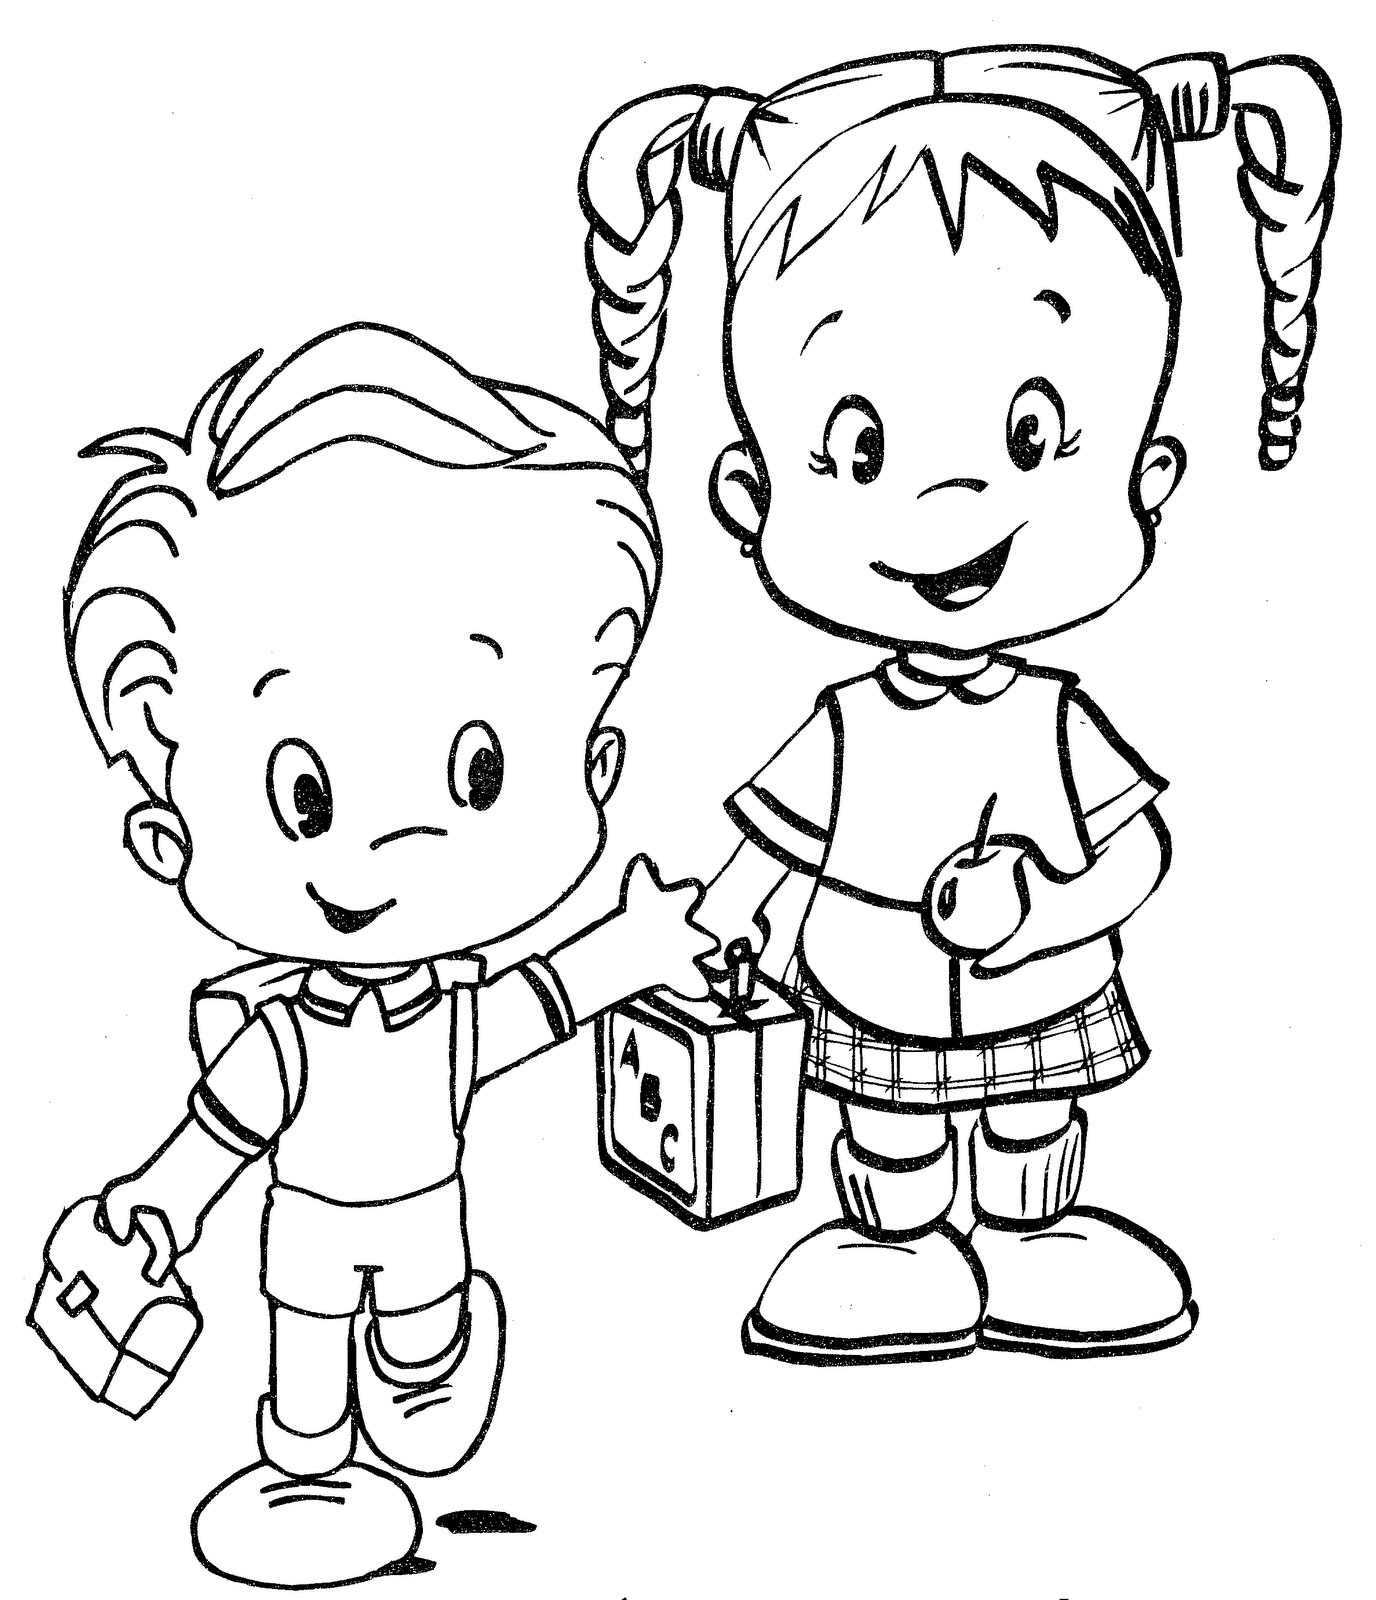 Free Back to School Coloring Pages for Preschool